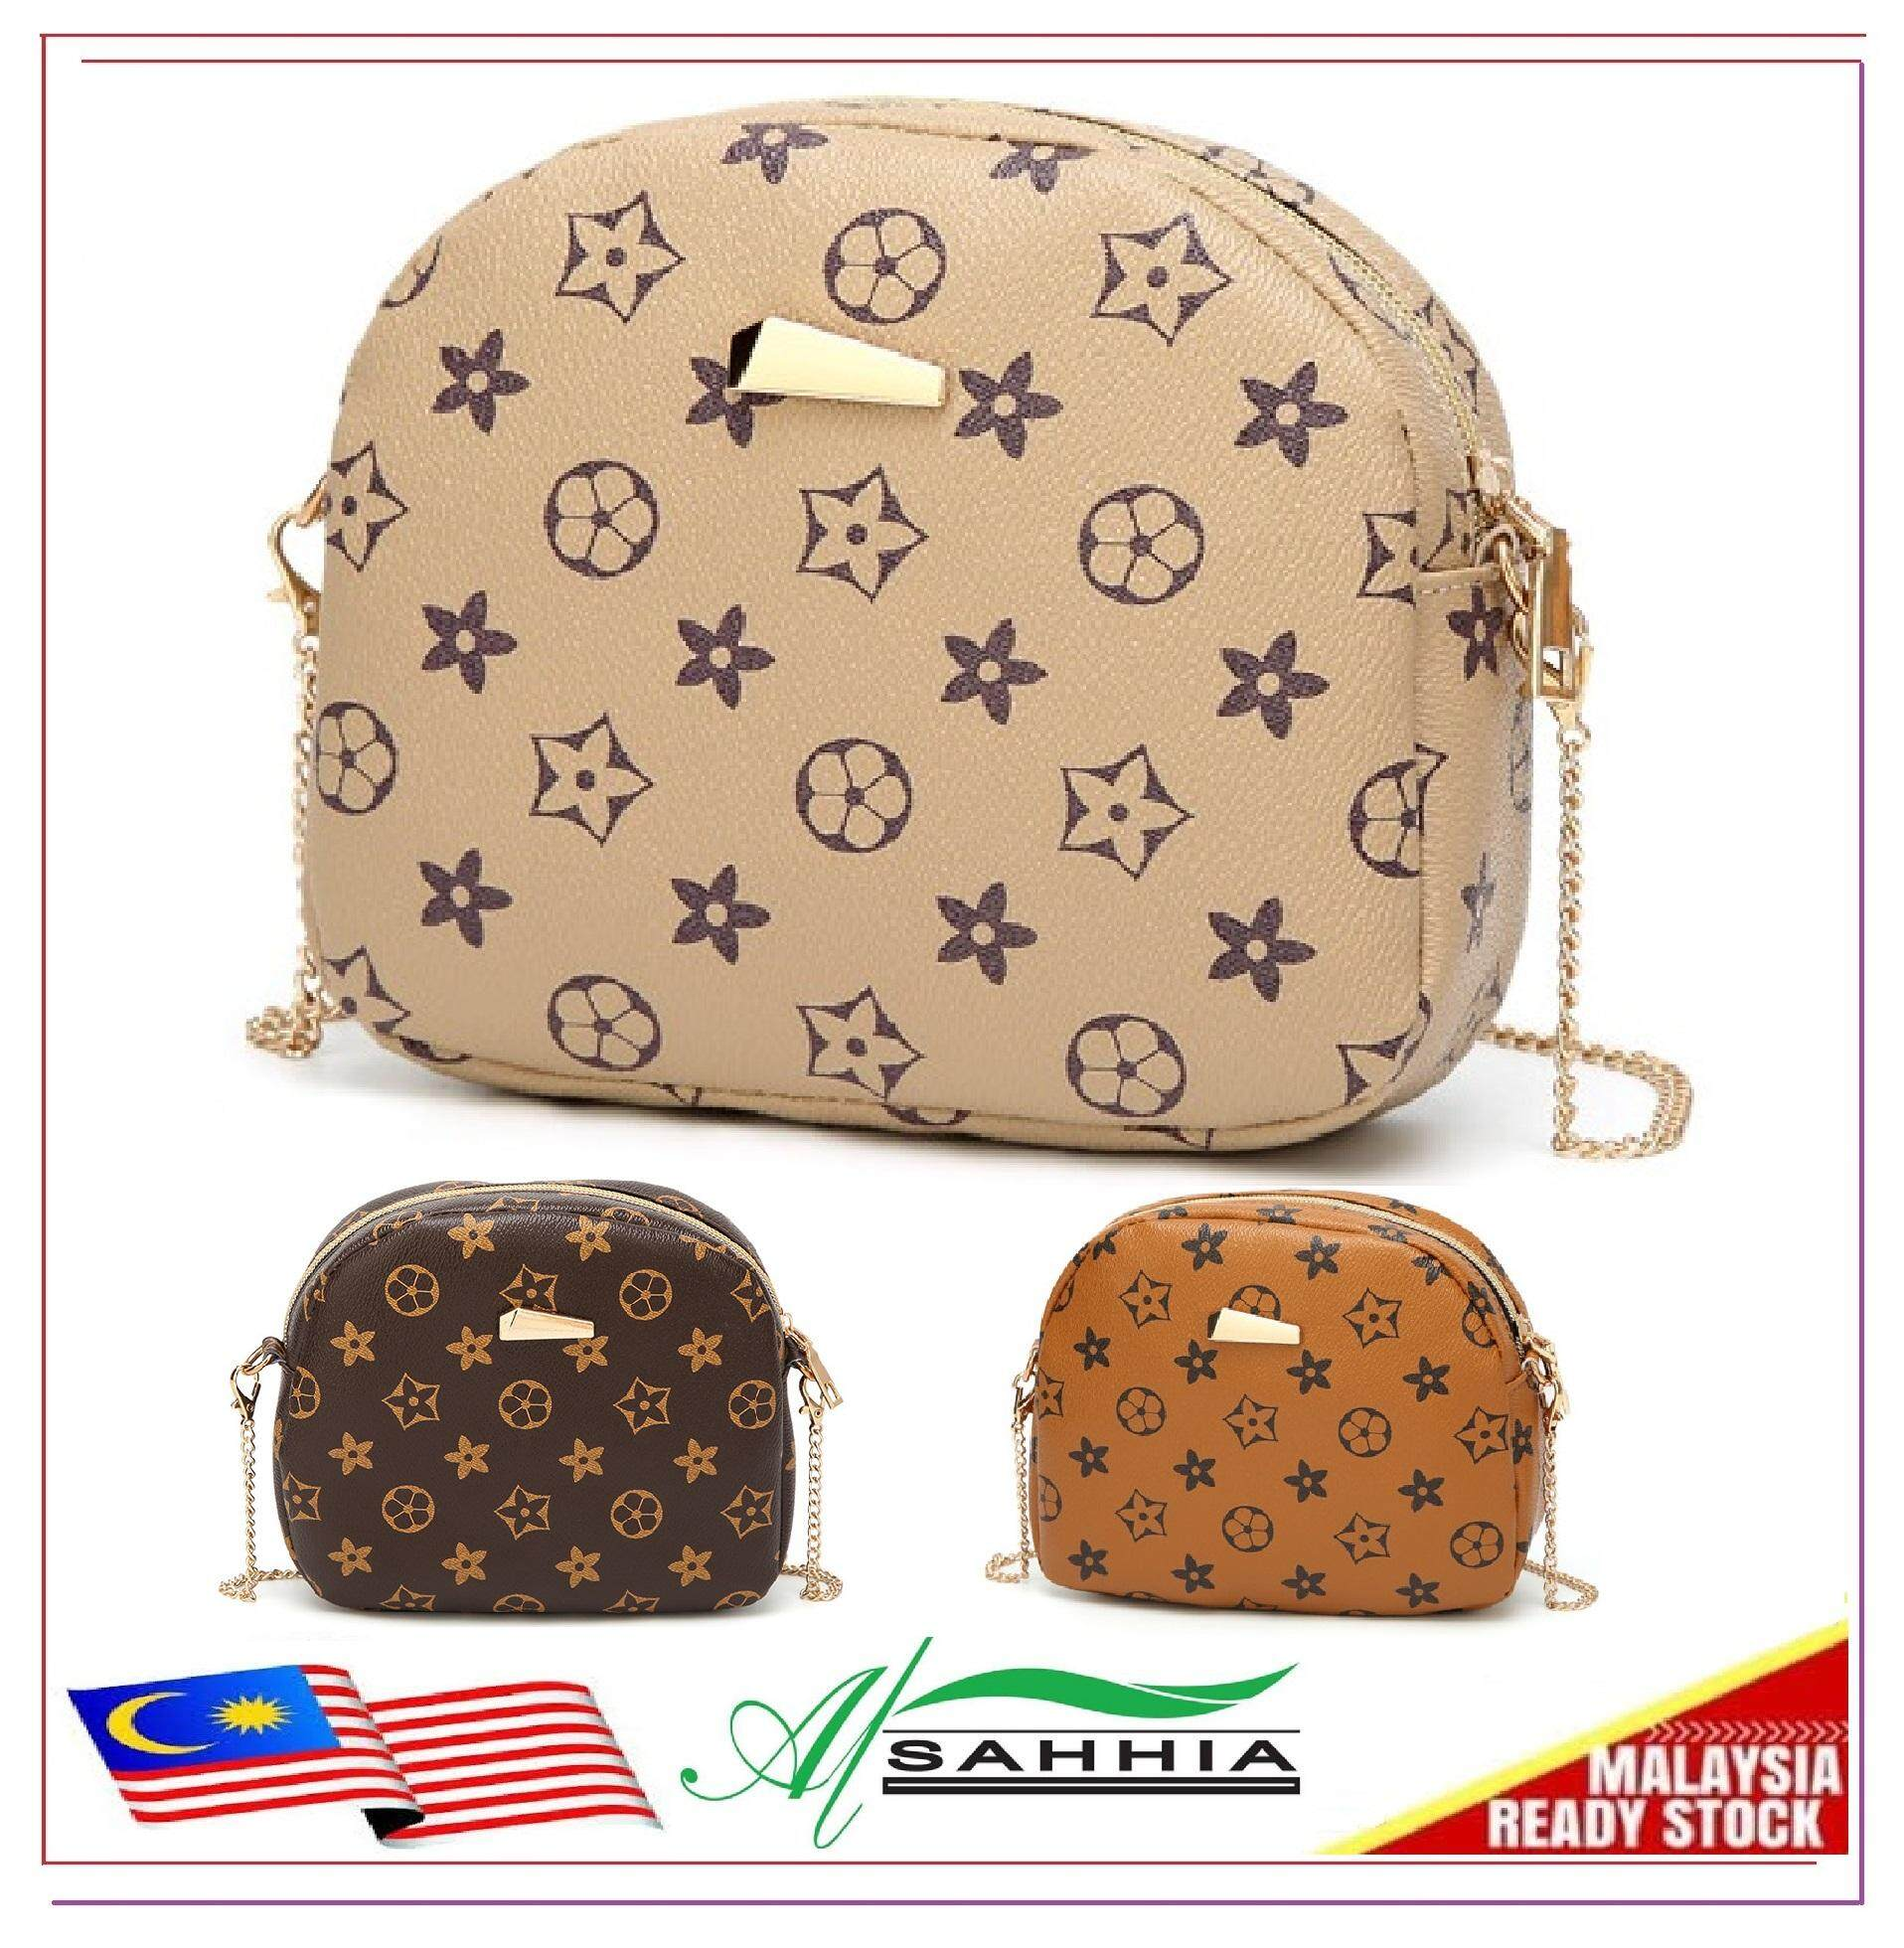 08086555e3 Al Sahhia Ready Stock Star Brown Chain European Syle Sling Bag